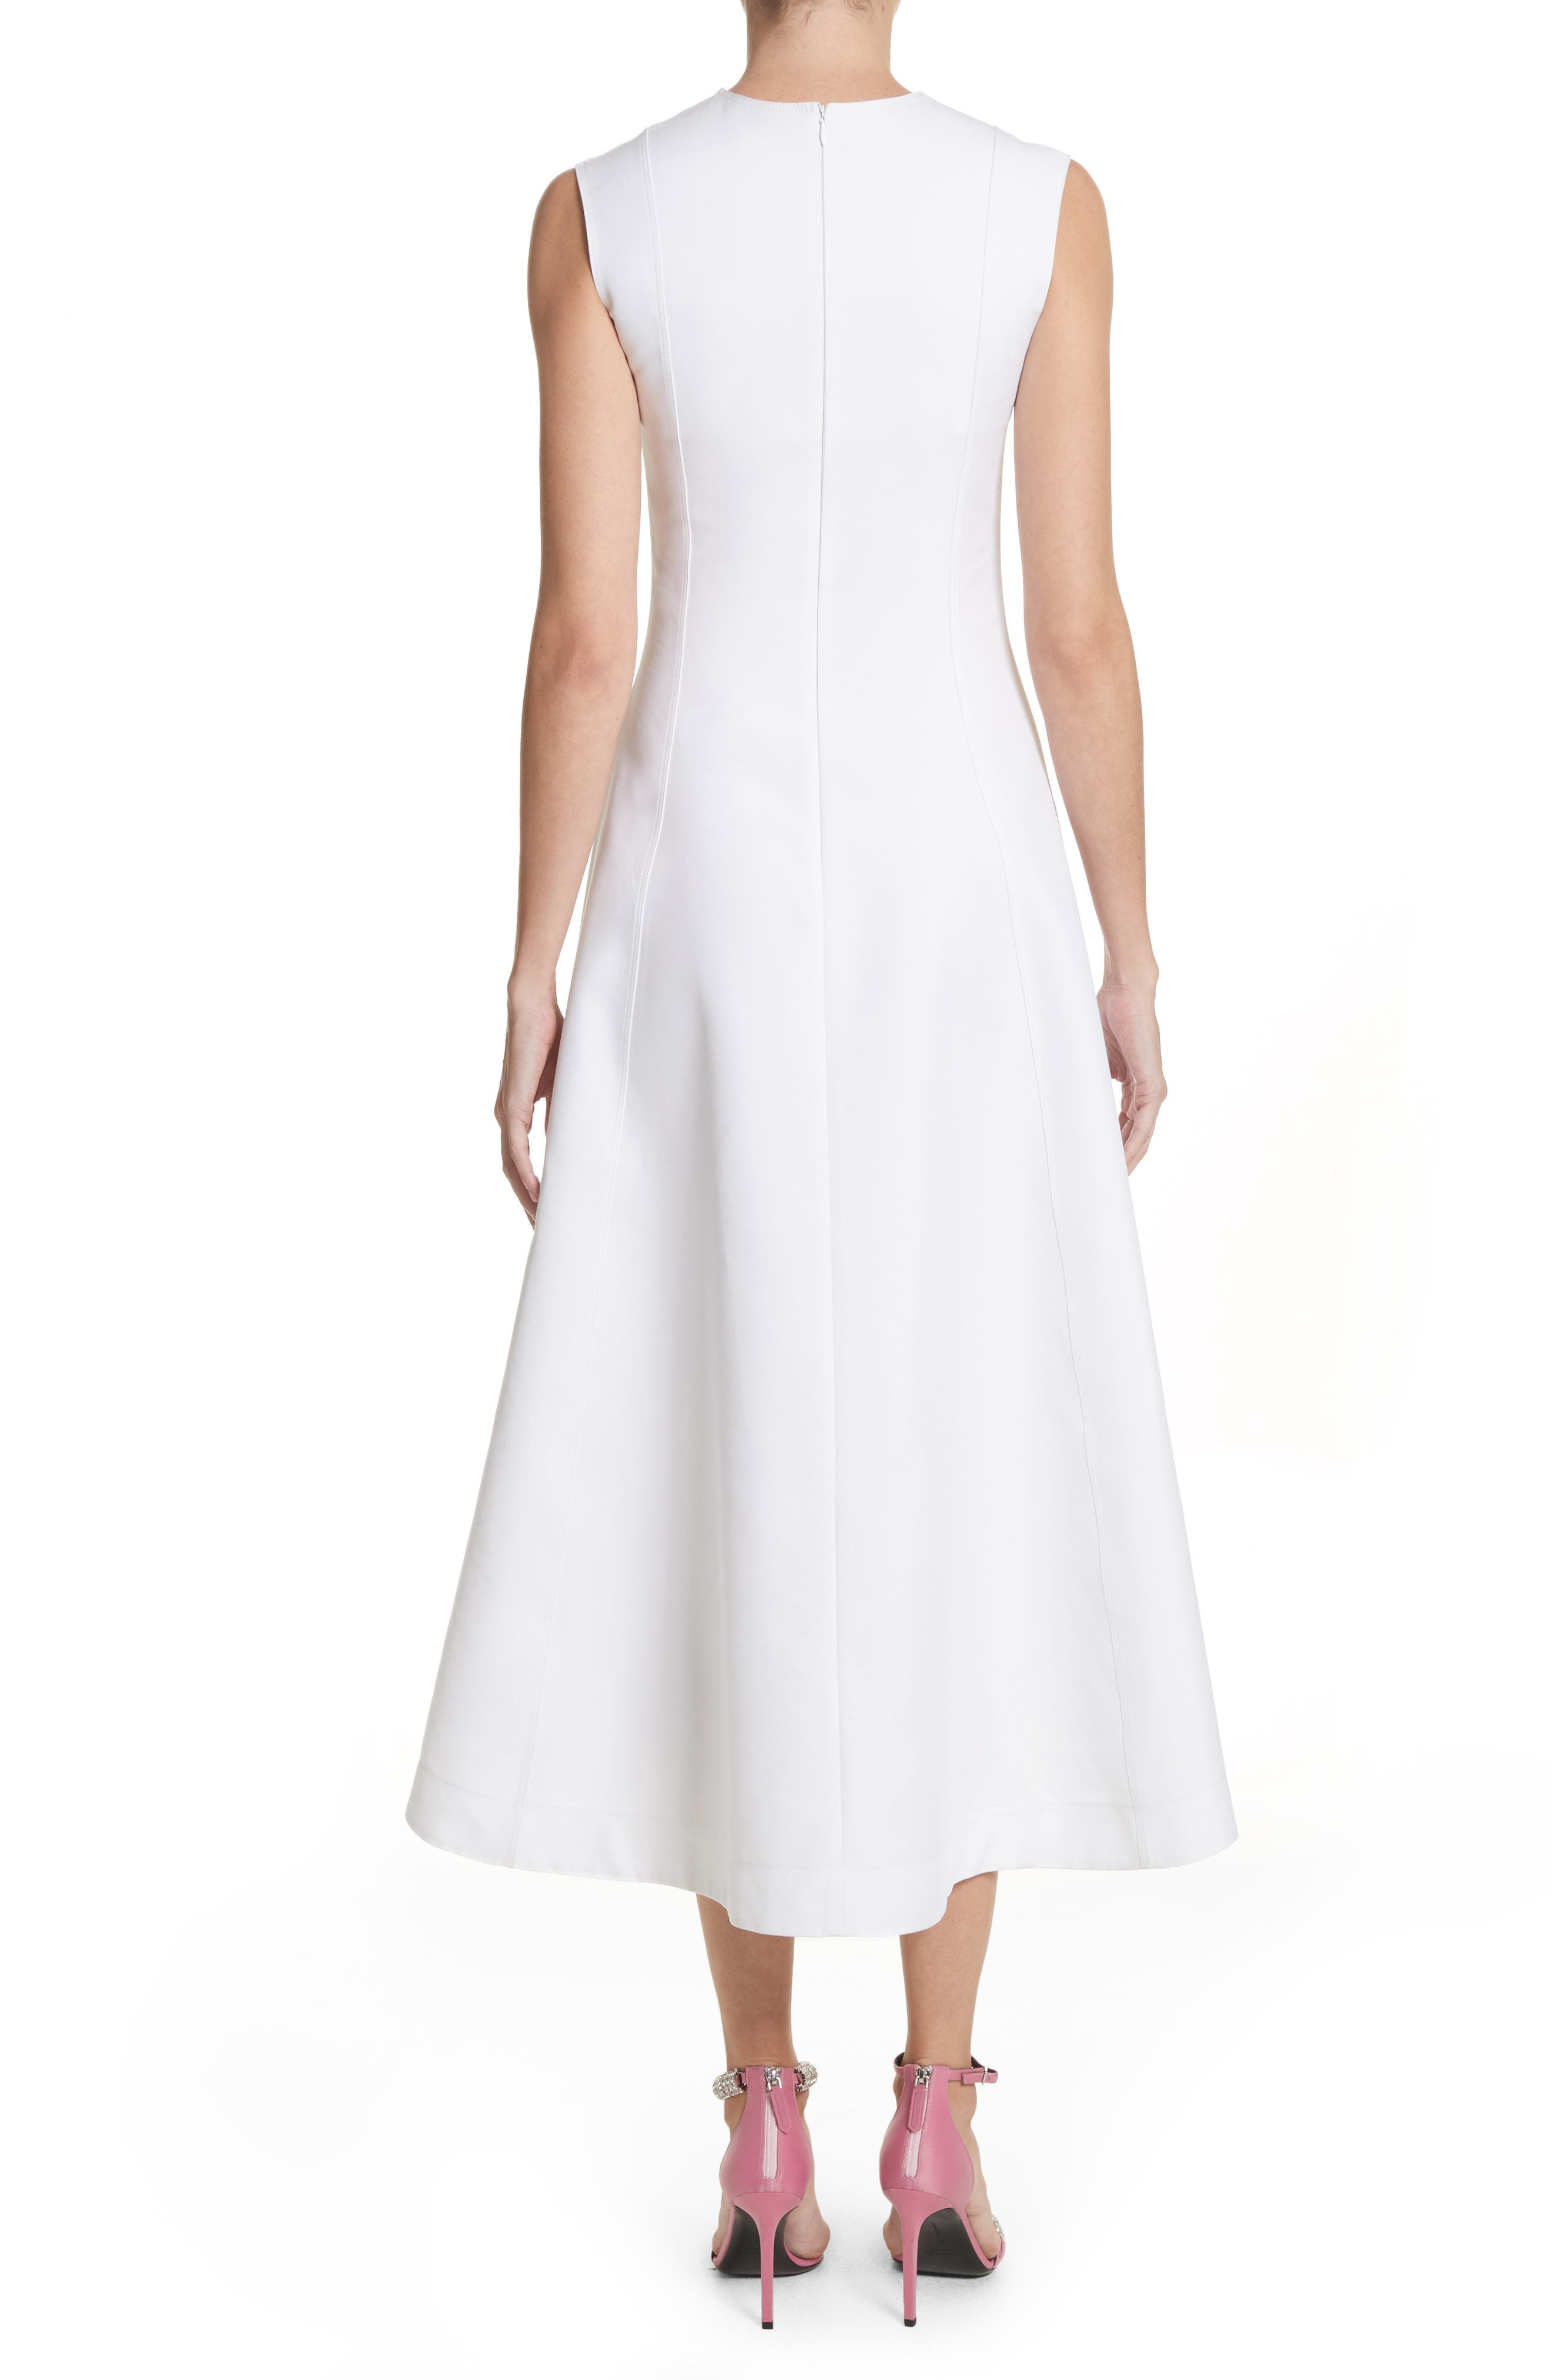 CALVIN KLEIN 205W39NYC, Flap Detail A-Line Dress, Alternate thumbnail 2, color, OPTIC WHITE